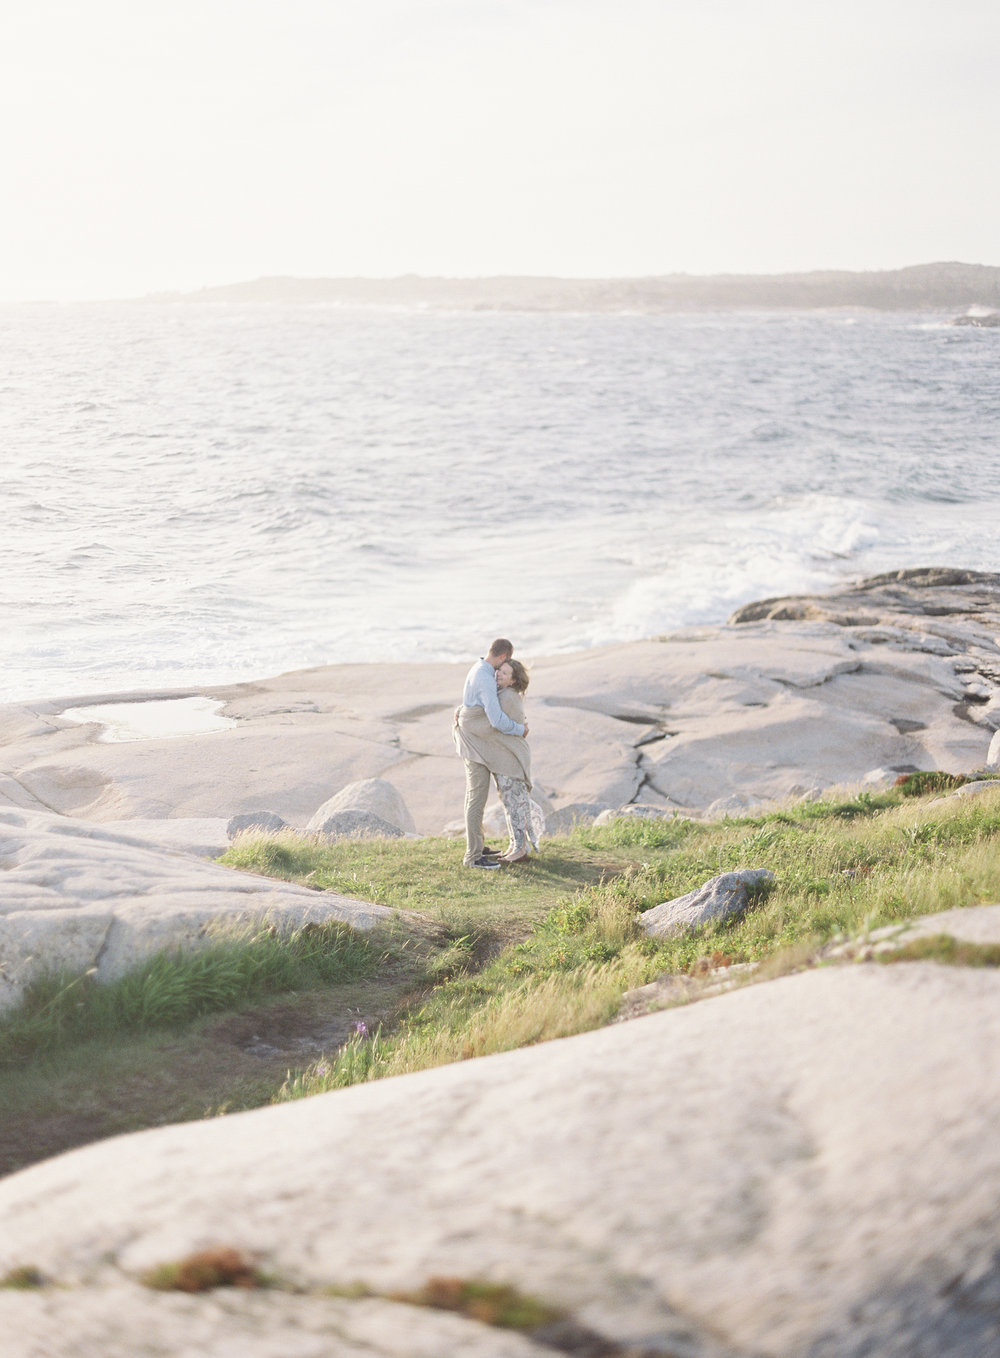 Jacqueline Anne Photography - Alex and Andrew Engagement at Peggy's Cove - Halifax-121.jpg